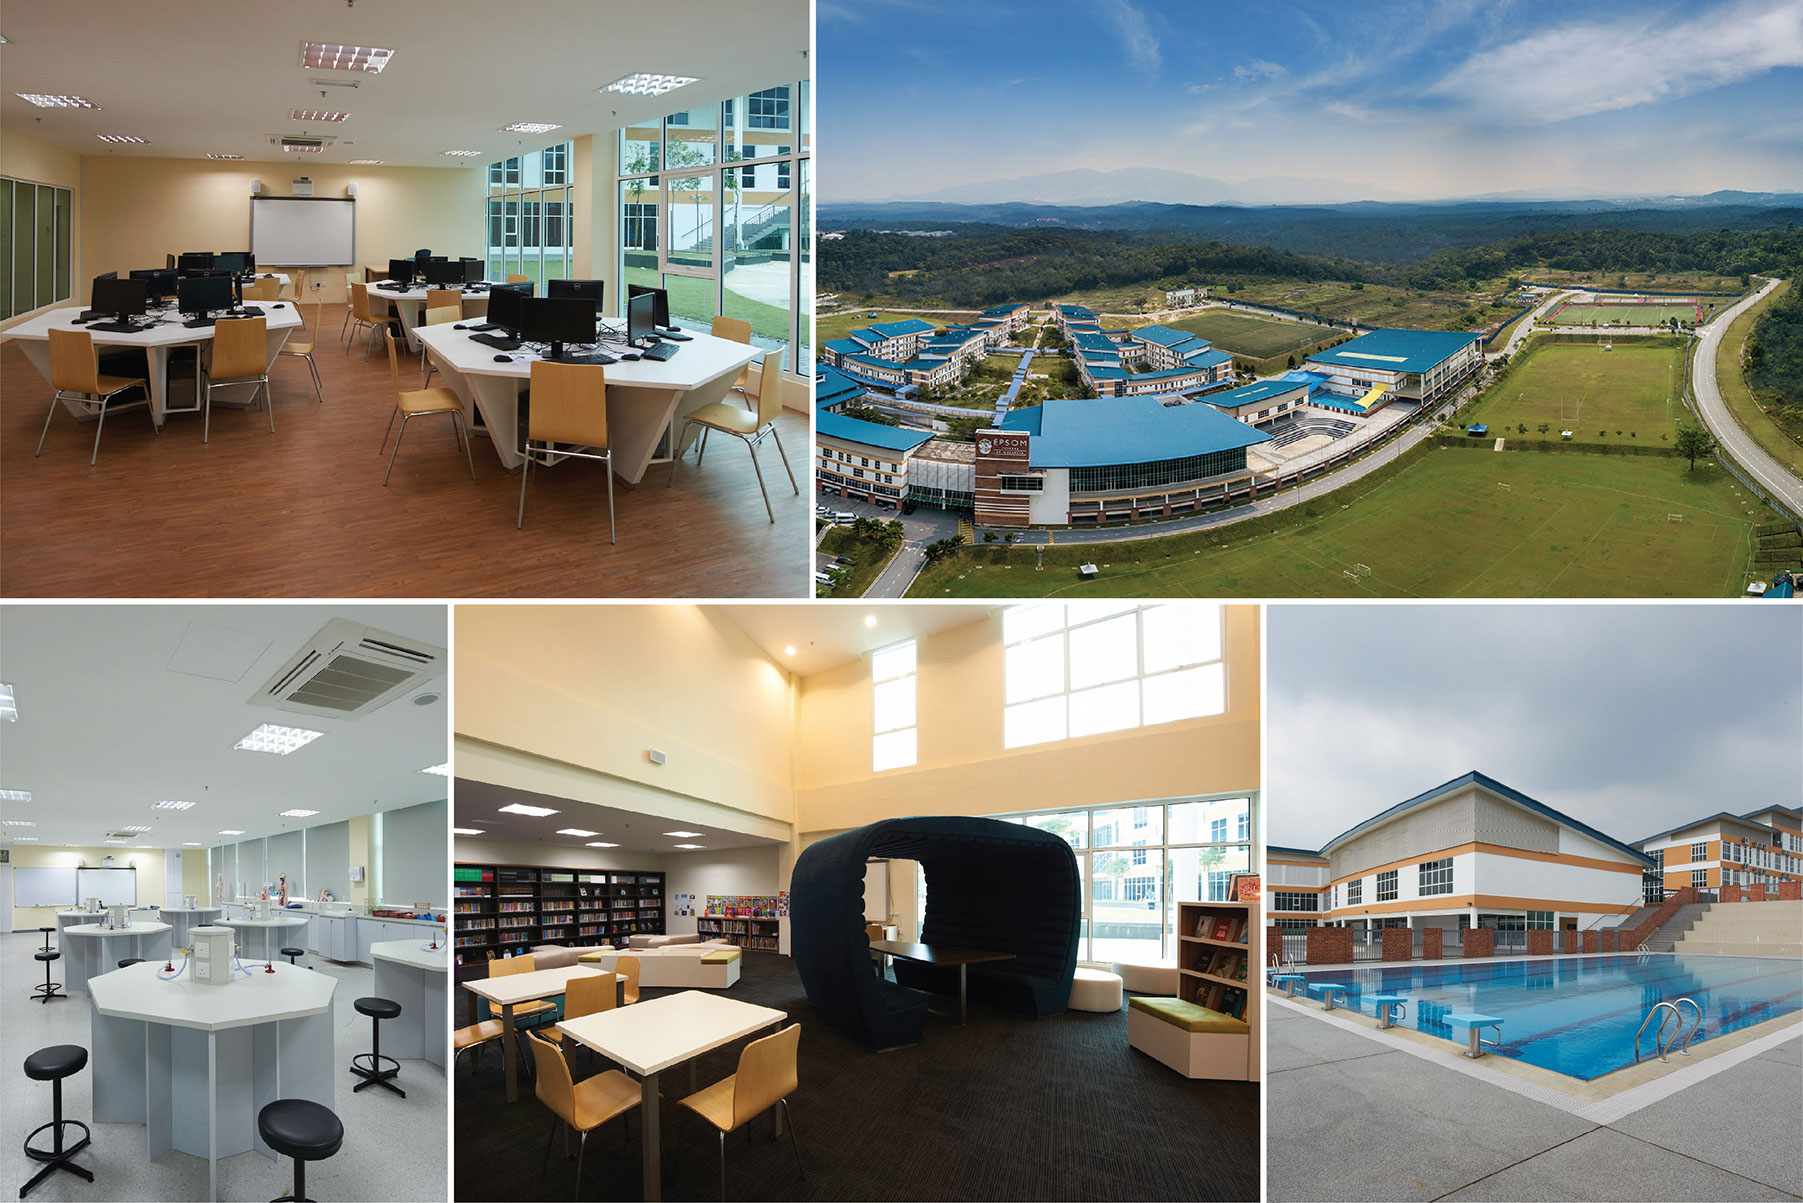 EPSOM COLLEGE MALAYSIA SPRING HOLIDAY PROGRAMME 2020